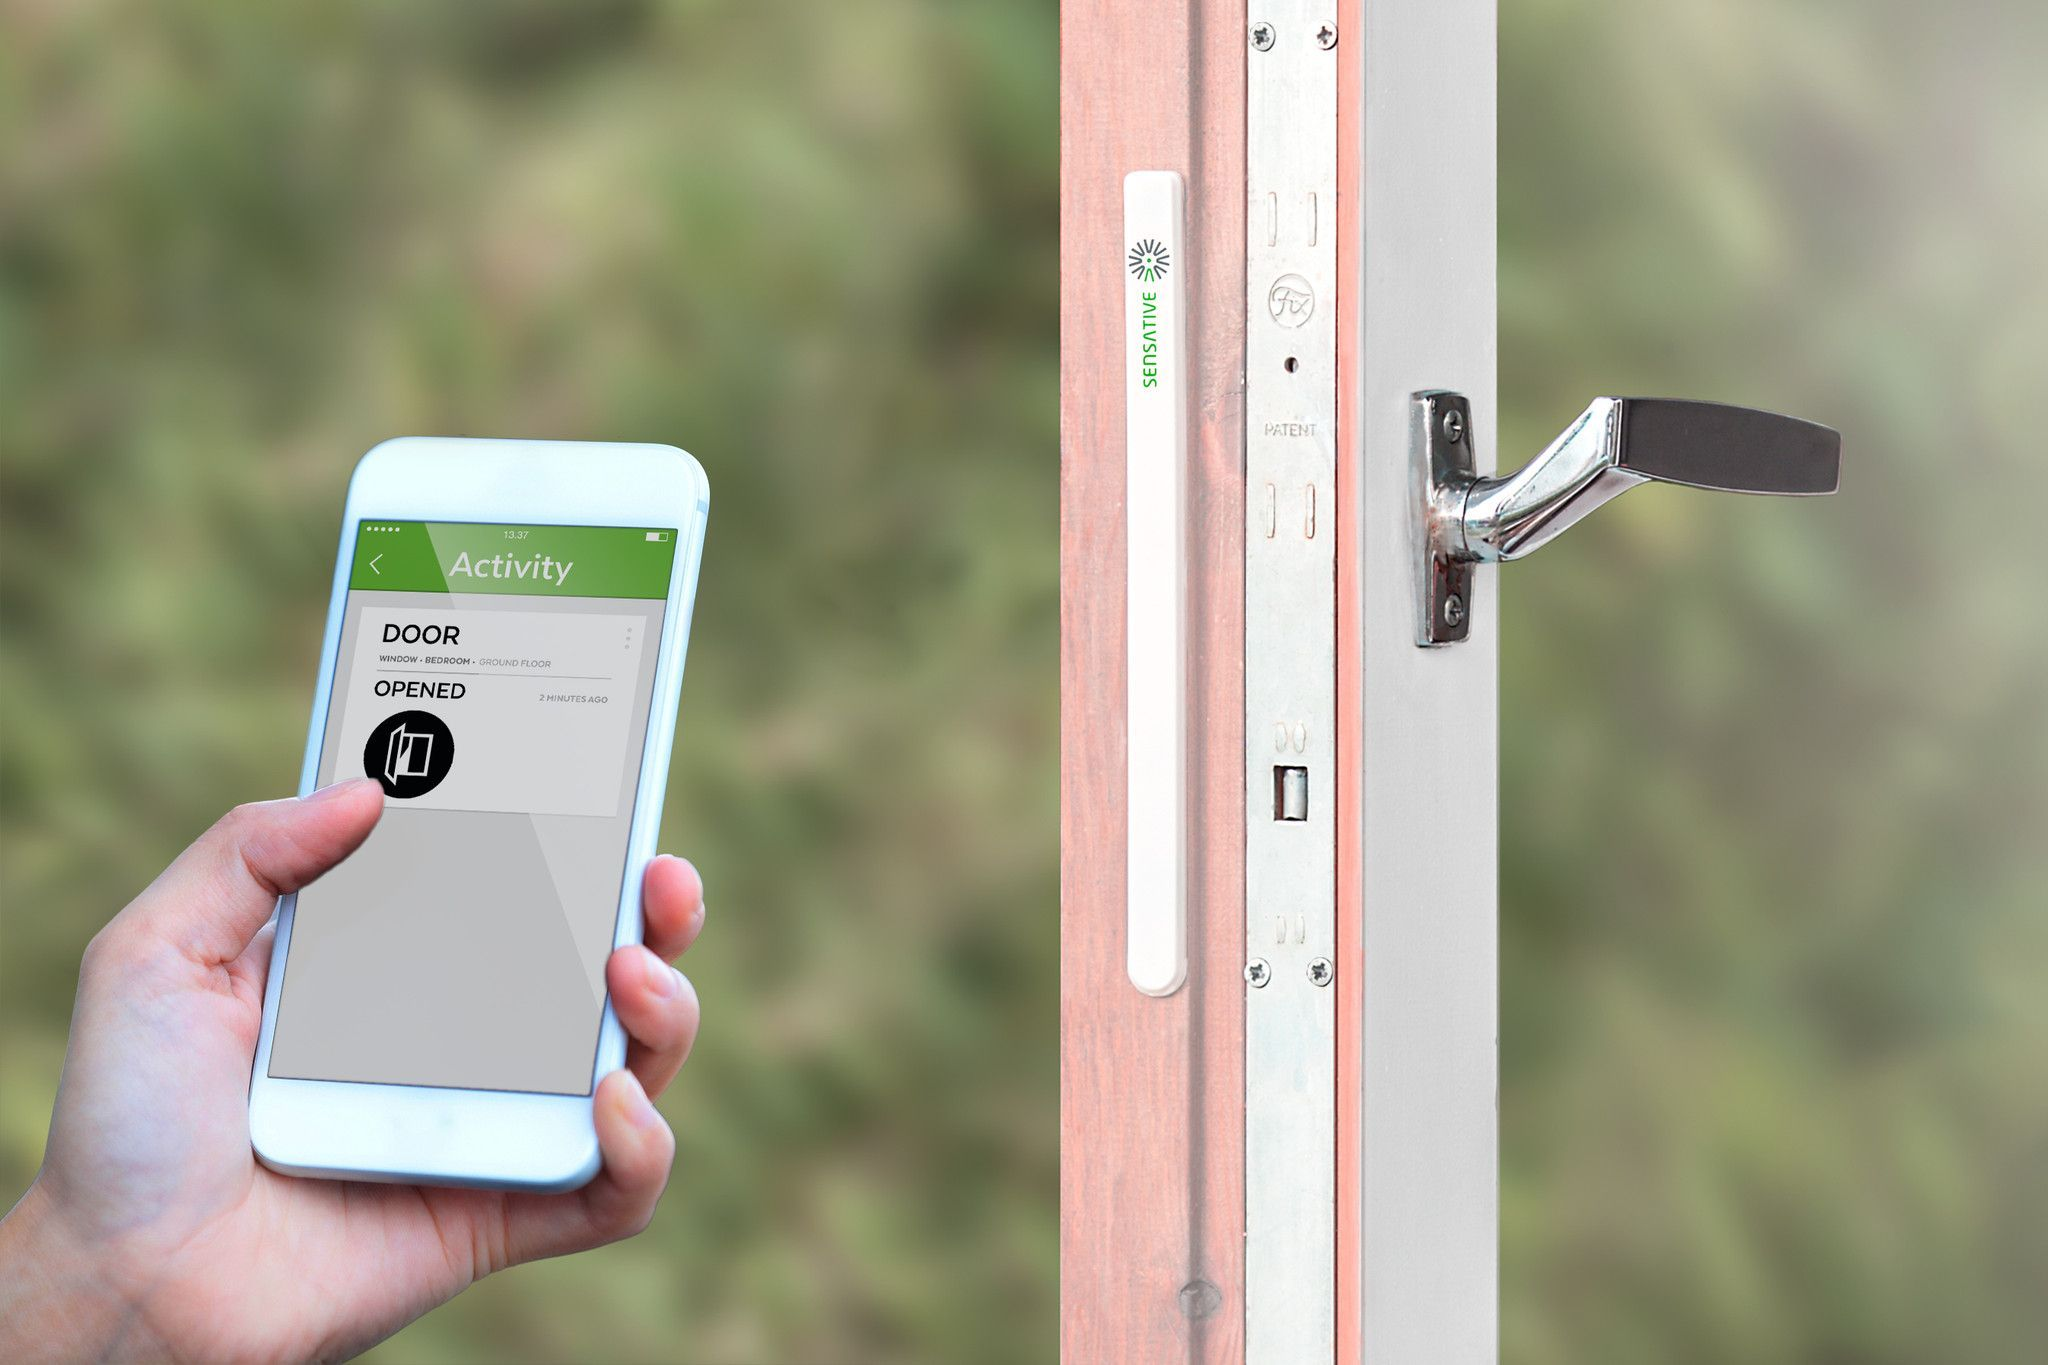 Smart Home Security Devices For Doors And Windows Diy Home Security Wireless Home Security Home Security Systems